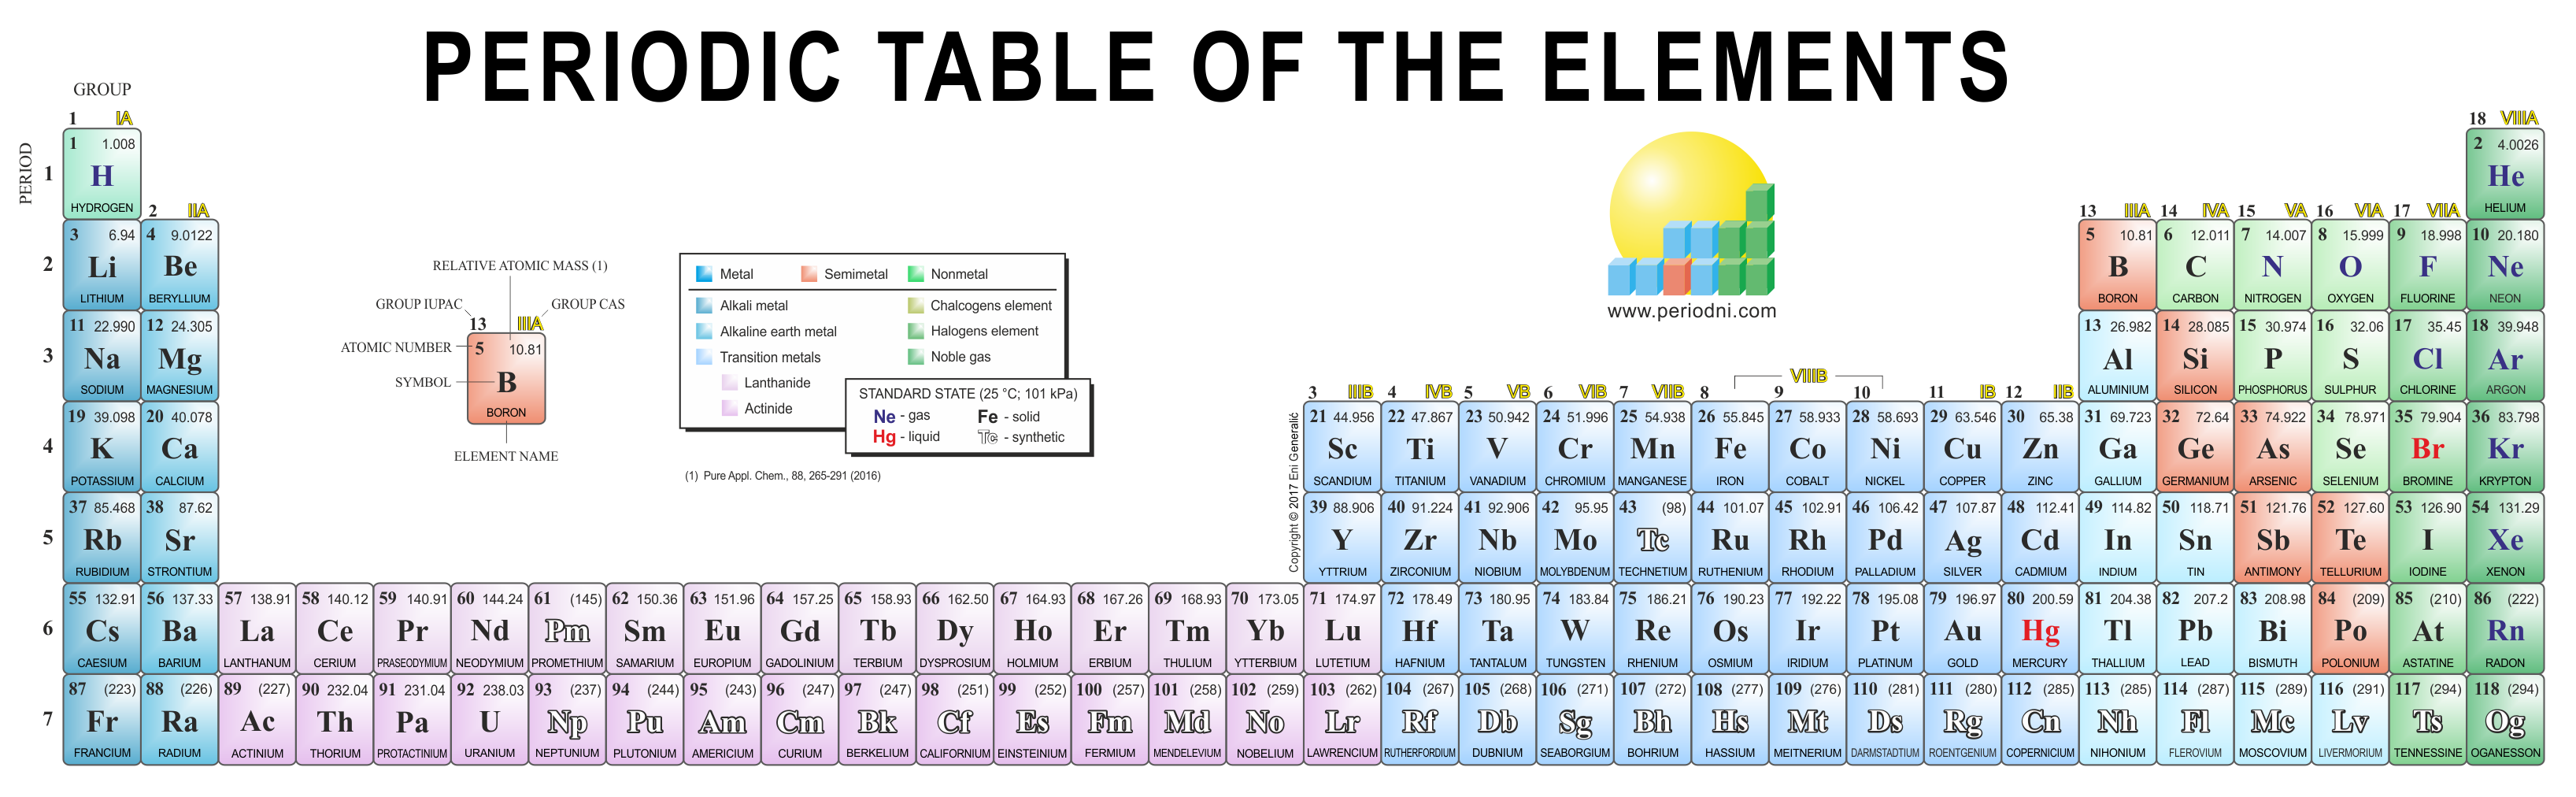 Chemistry images gallery 32 column periodic table gamestrikefo Choice Image